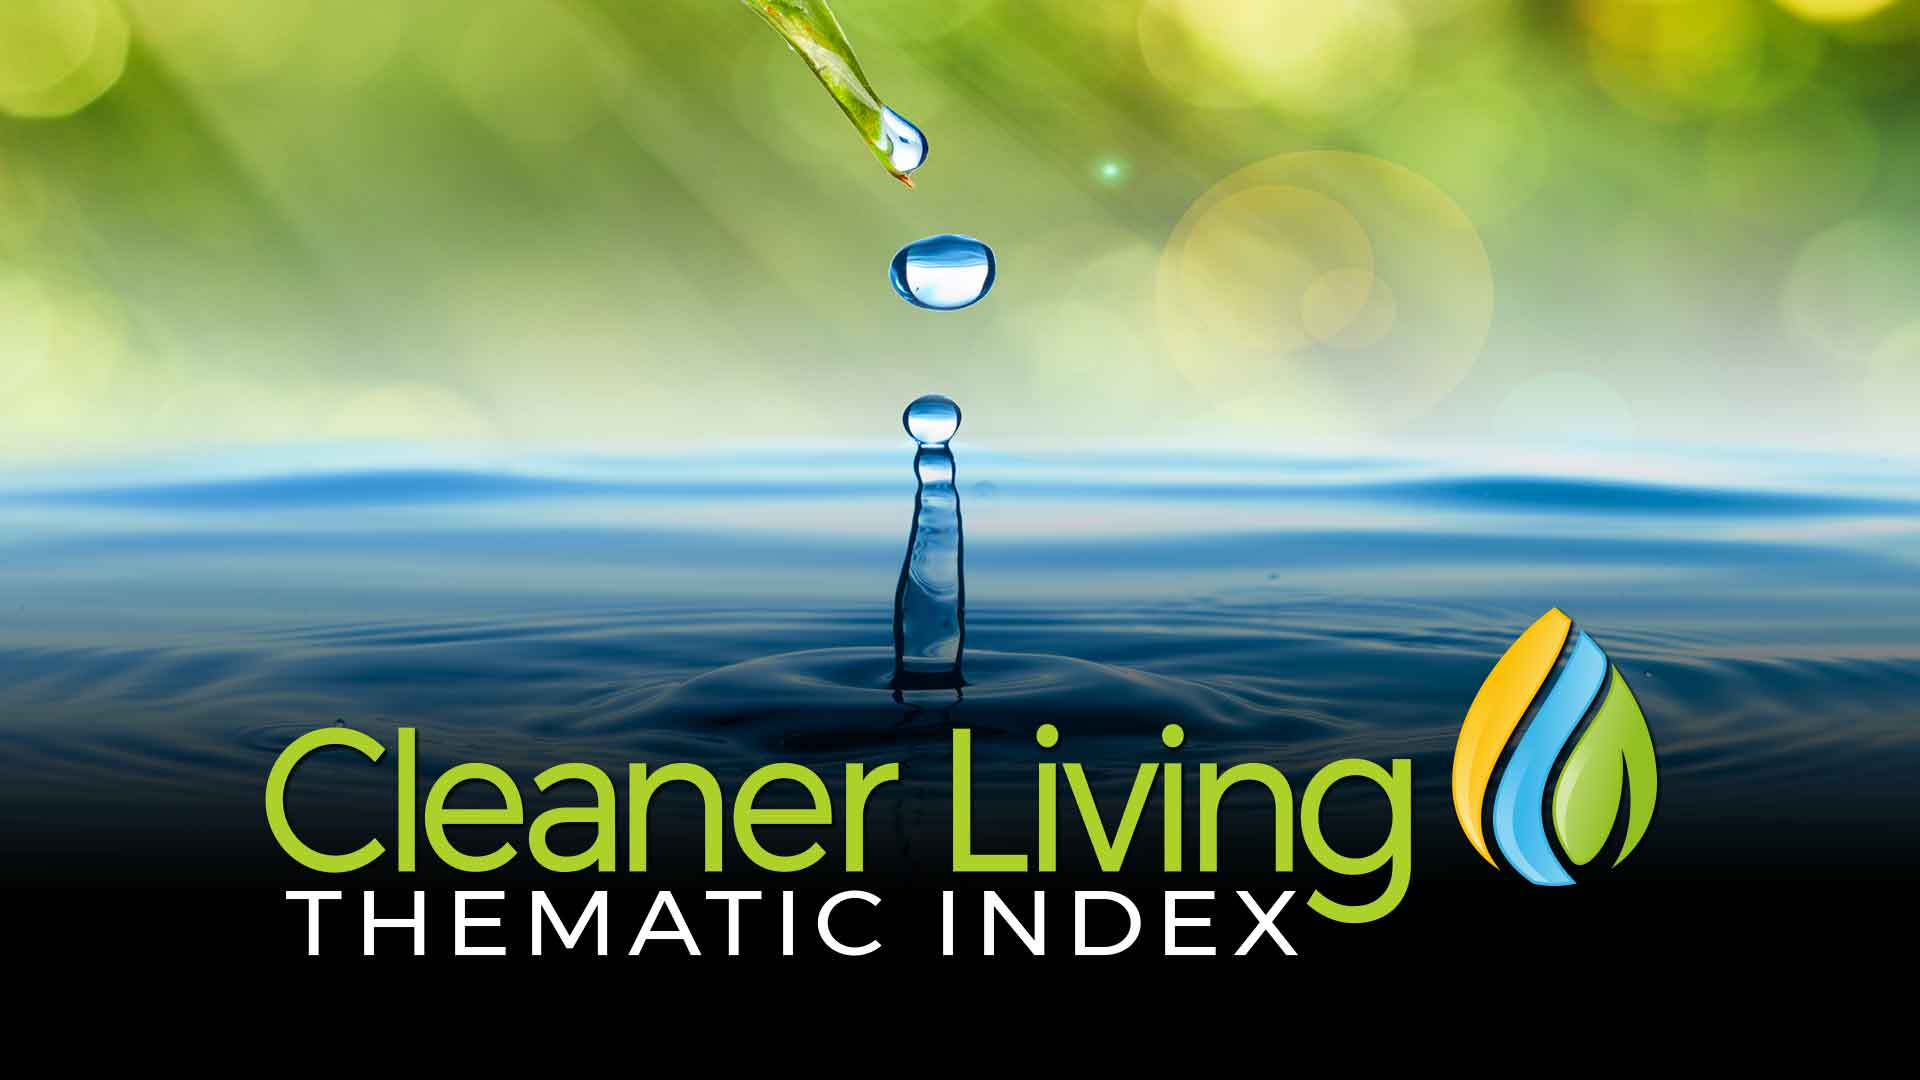 The New Tematica Research Cleaner Living Index